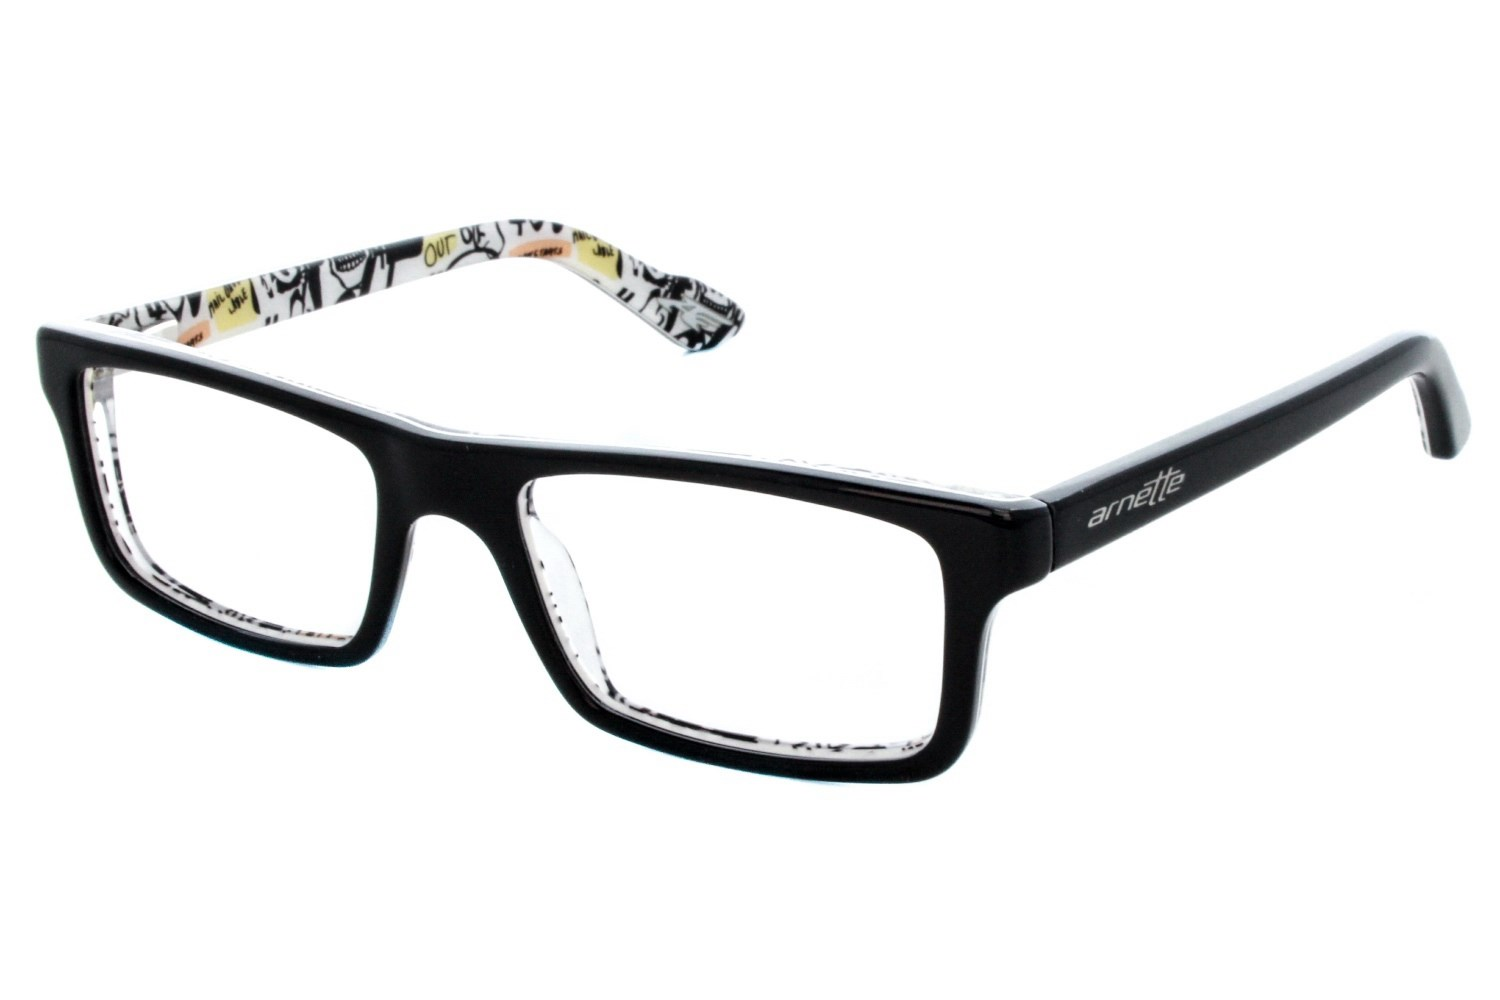 Arnette Lo Fi 49 Prescription Eyeglasses Frames